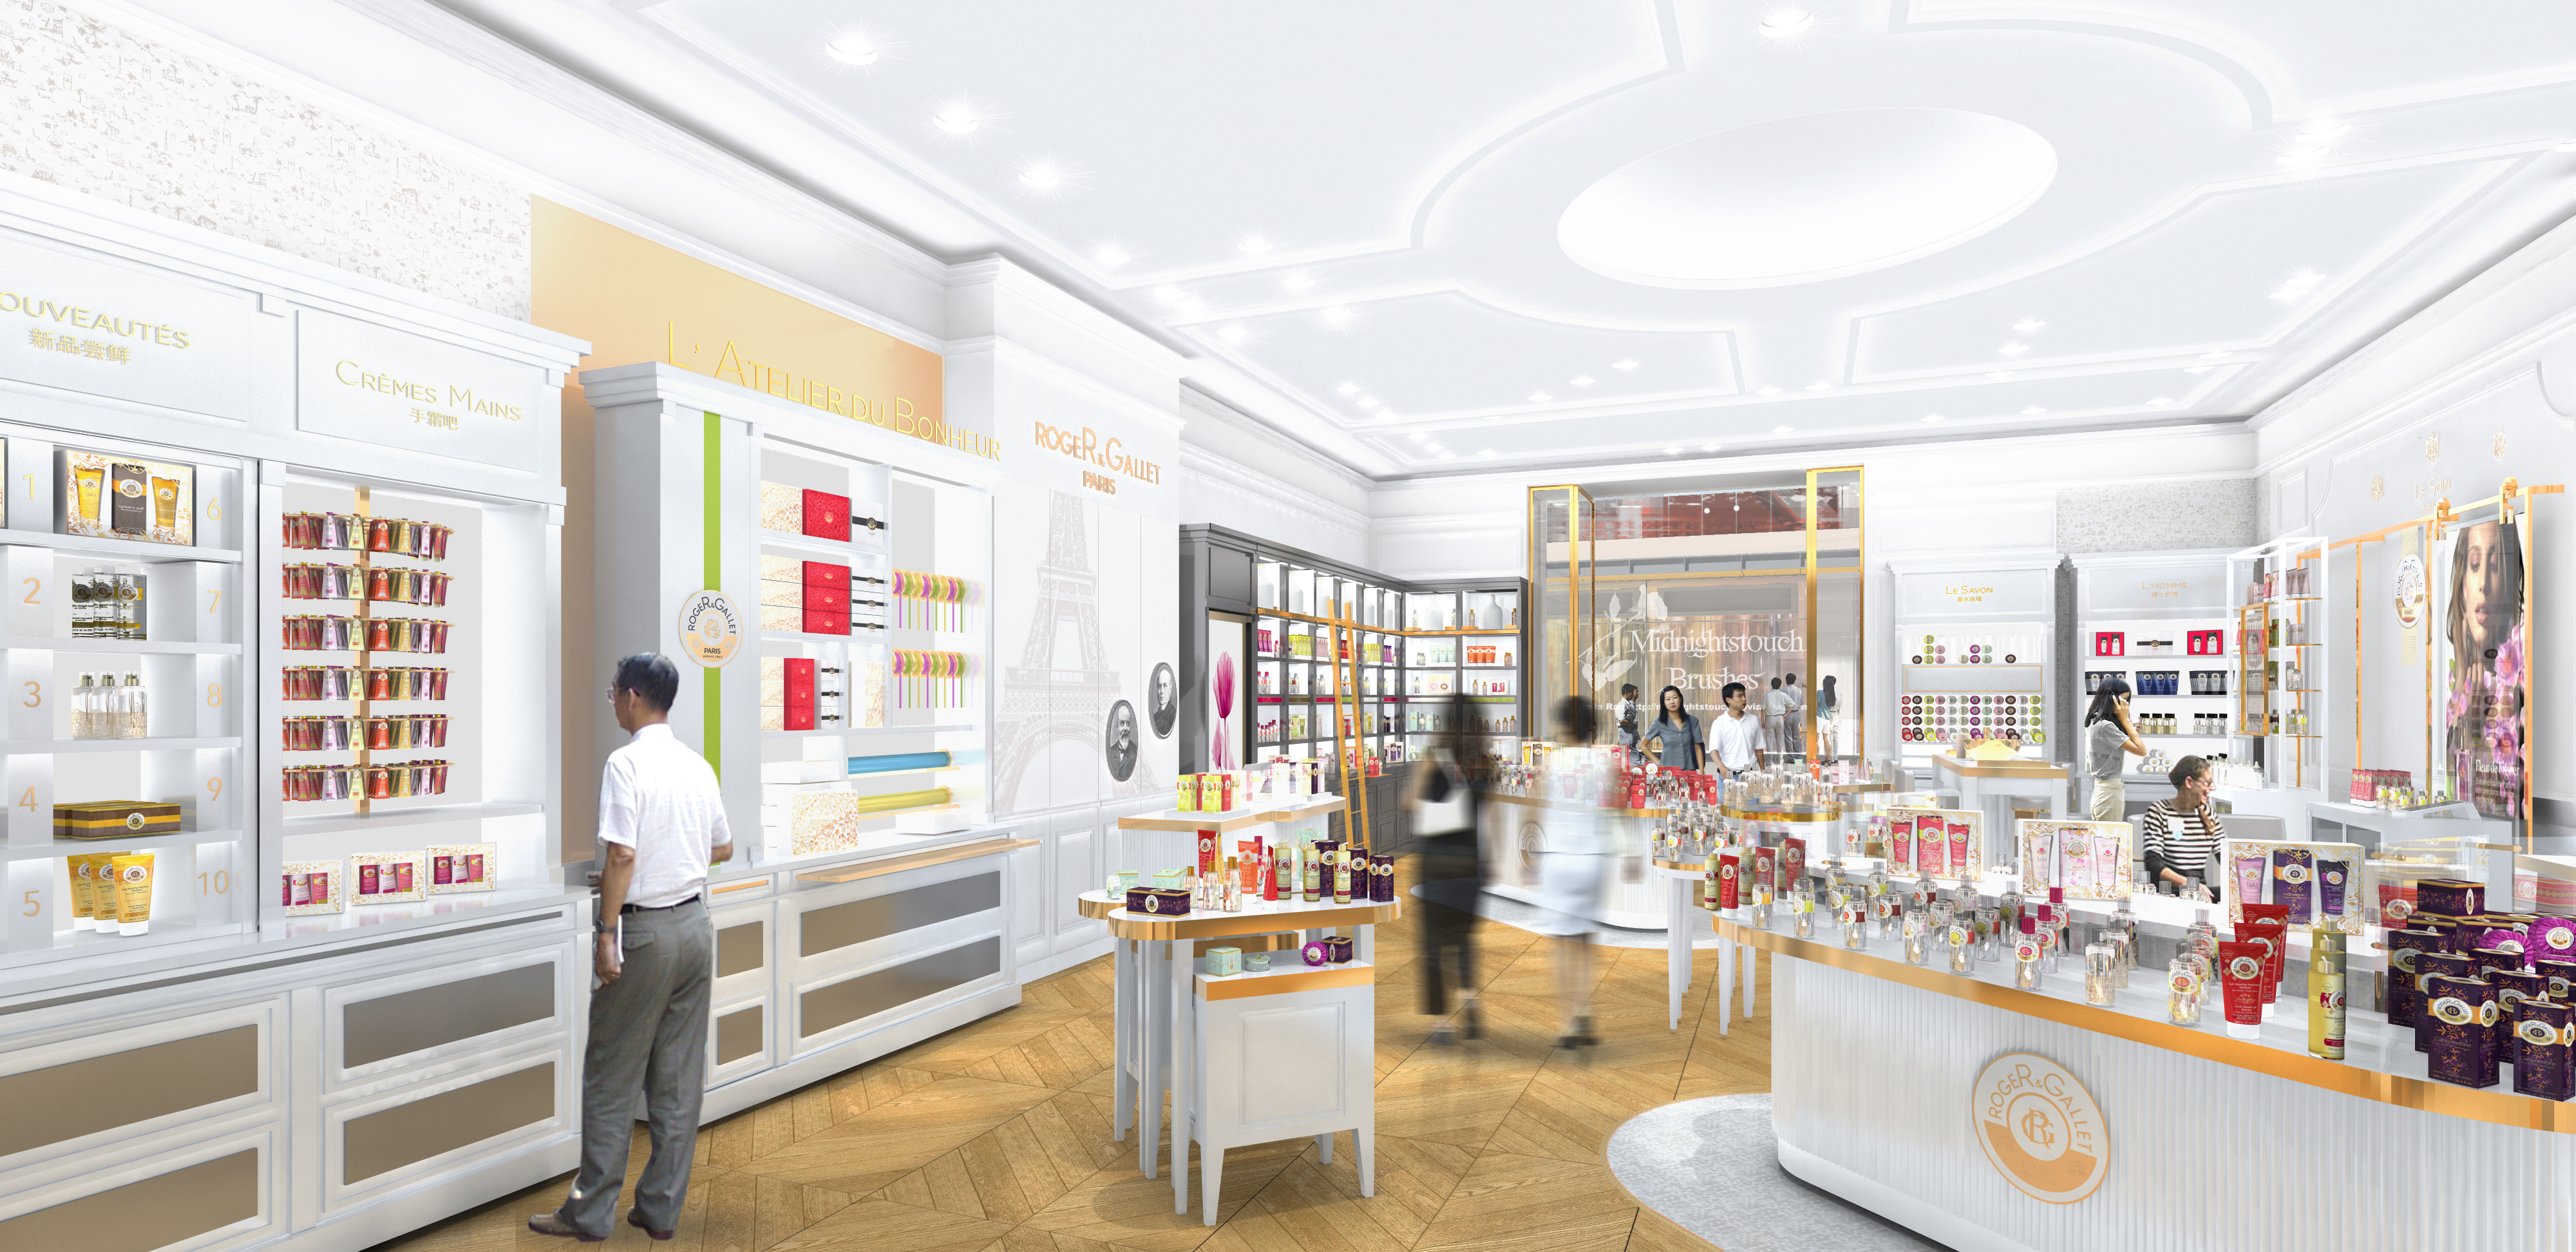 INTERSENS - L'Agence Versions - Boutique Roger & Gallet - Chine - Image d'Architecture 3D (2)